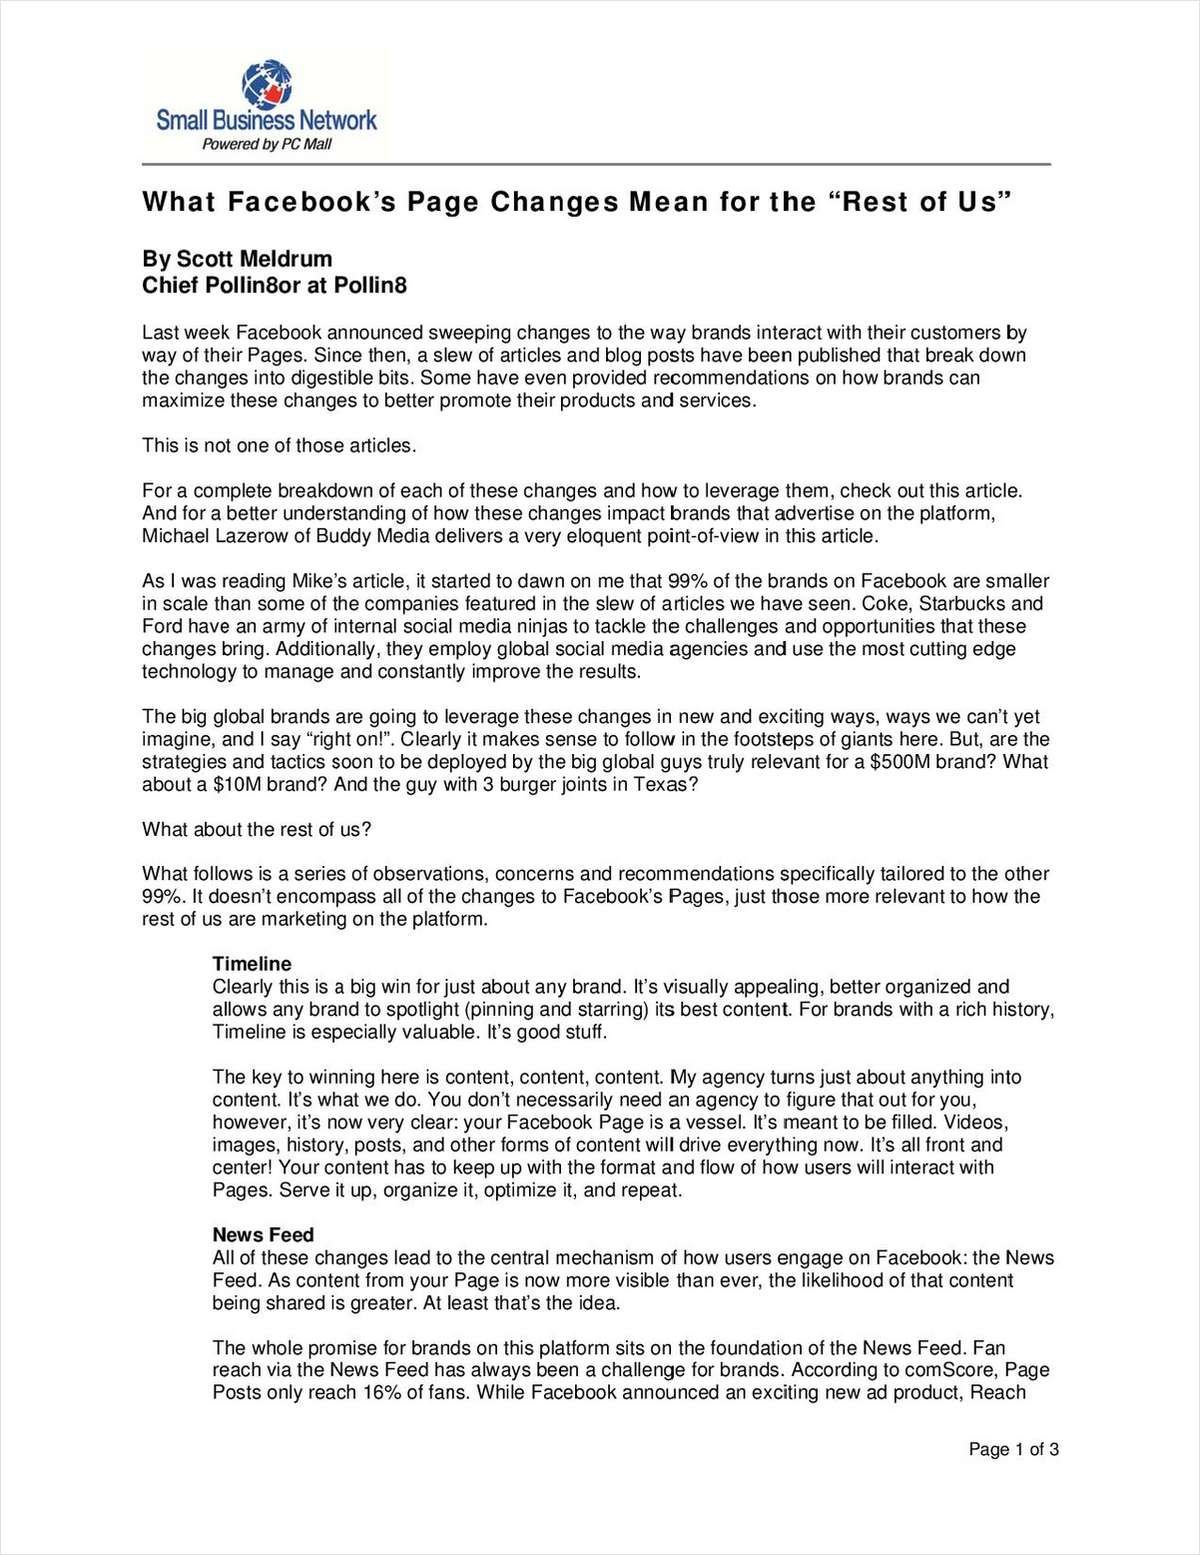 What Facebook's Page Changes Mean for the 'Rest of Us'